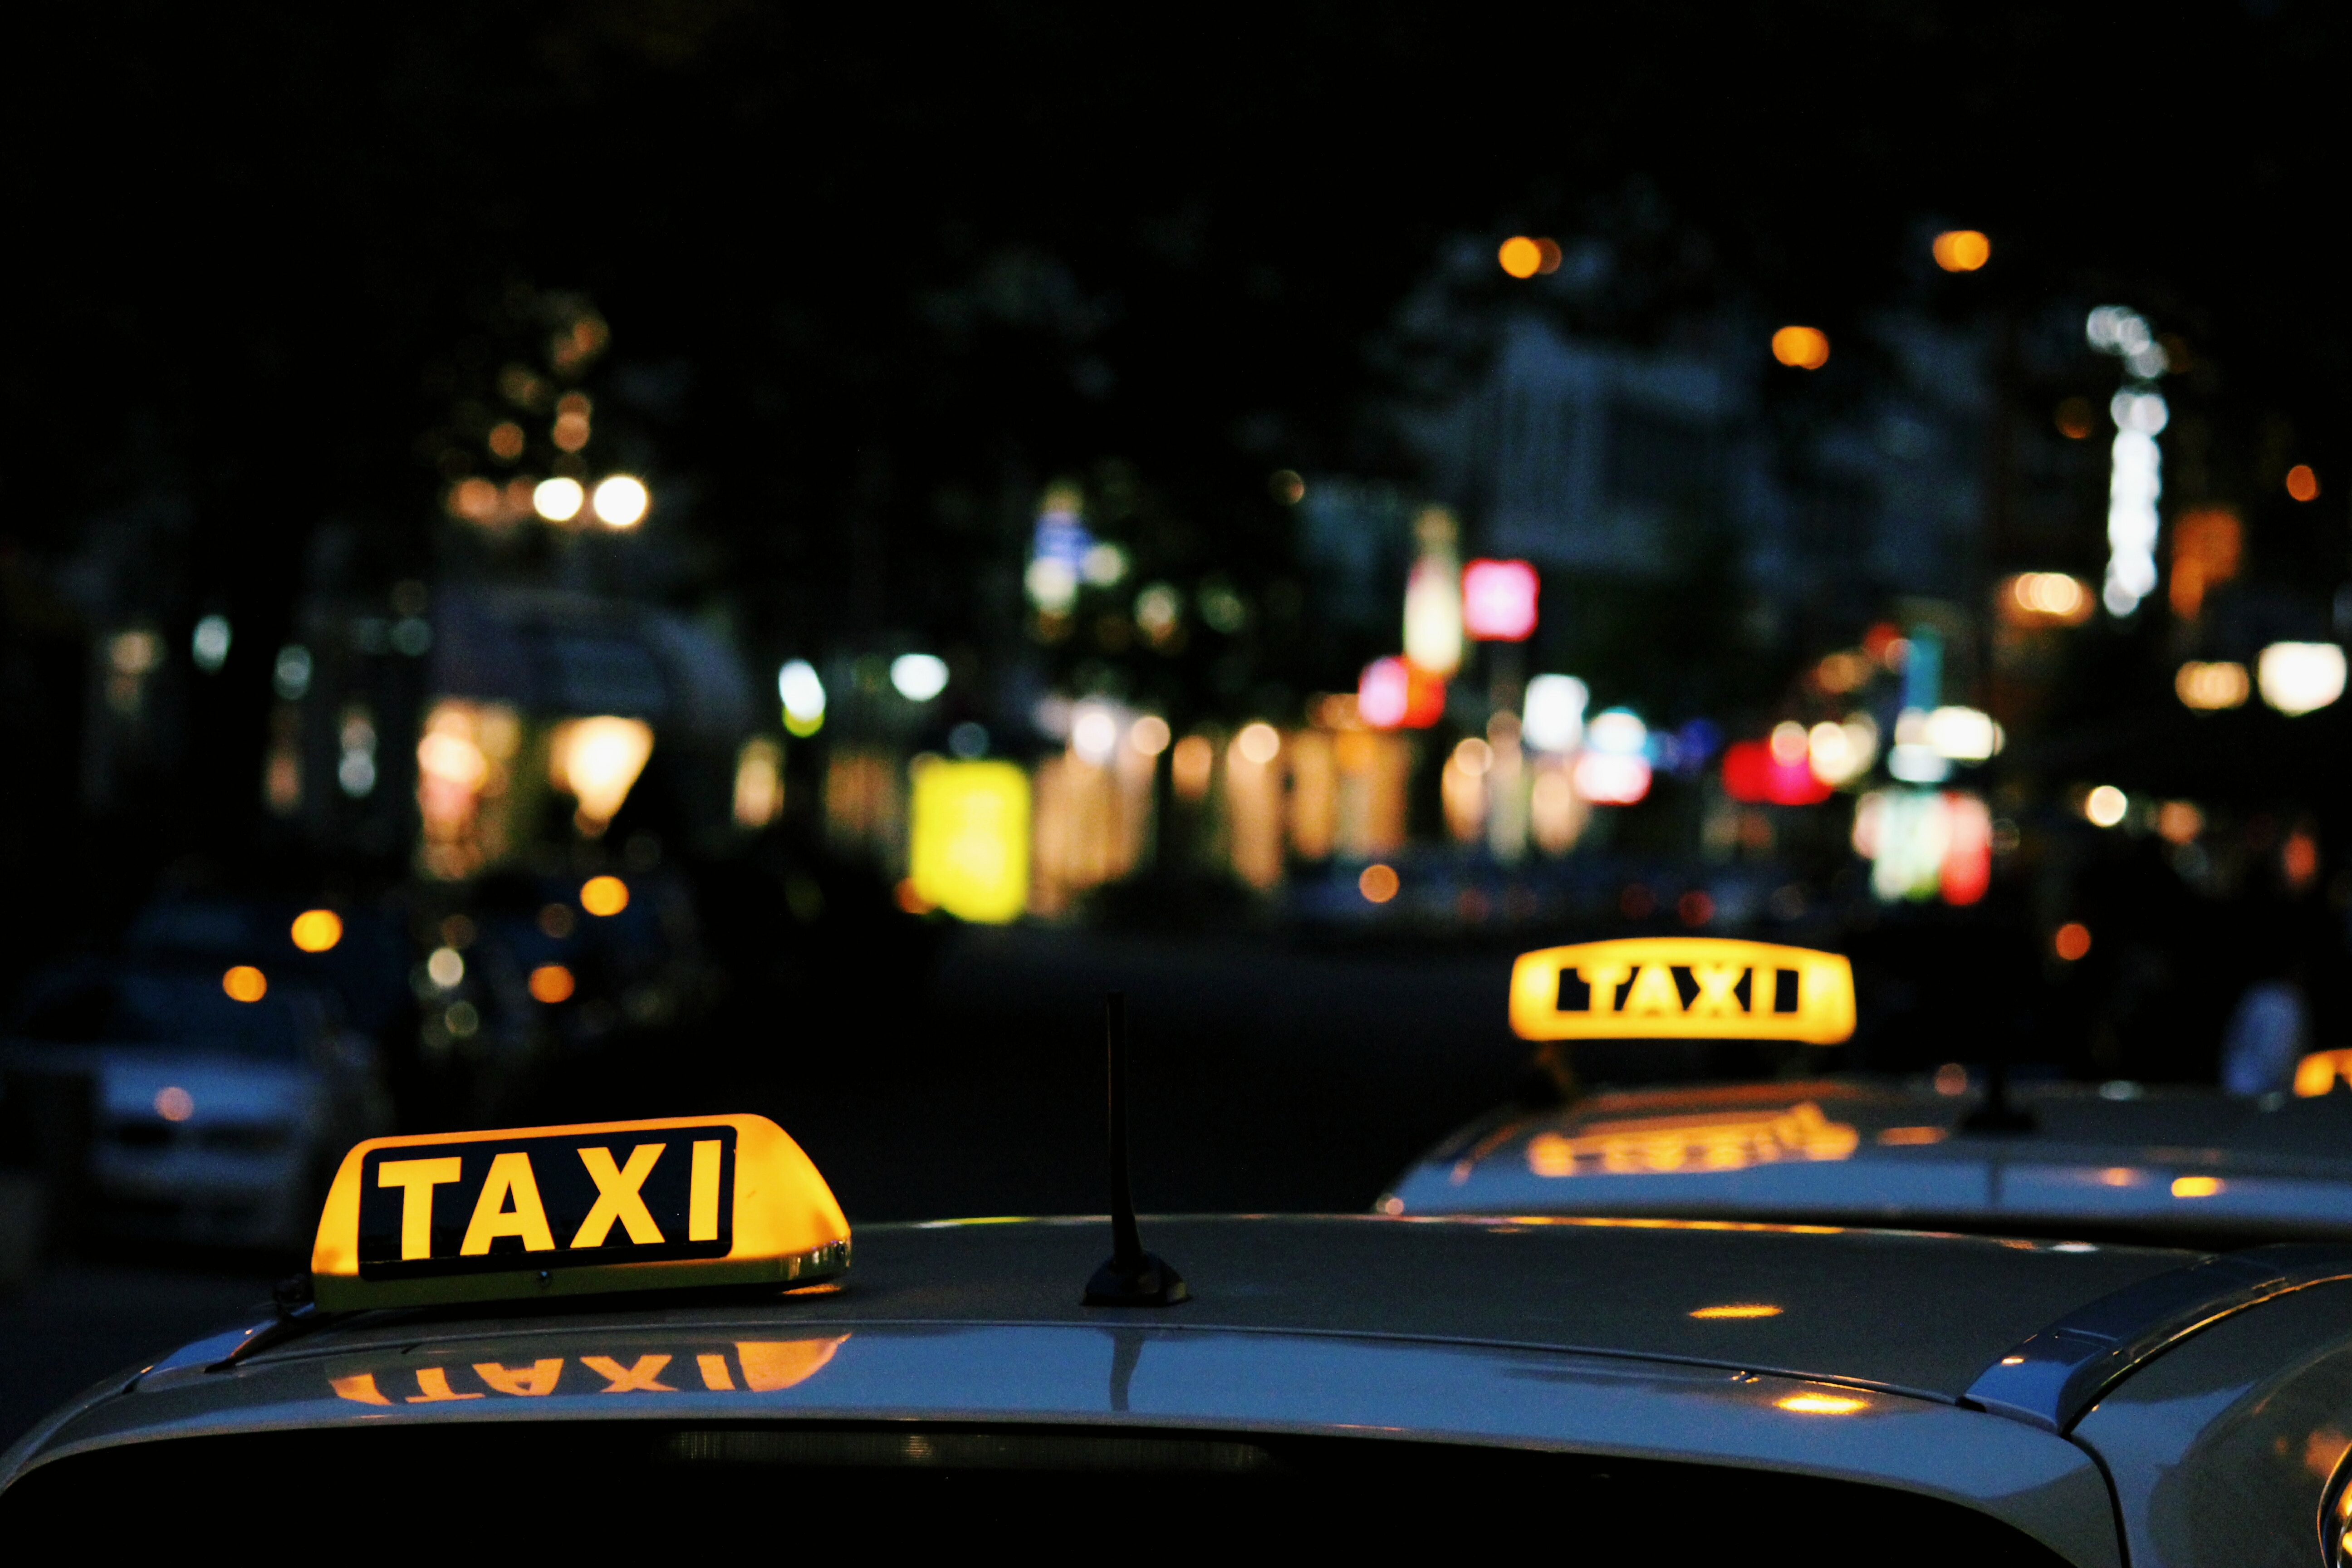 Easy Taxi Nepal Mobile App: Uber of Nepal?